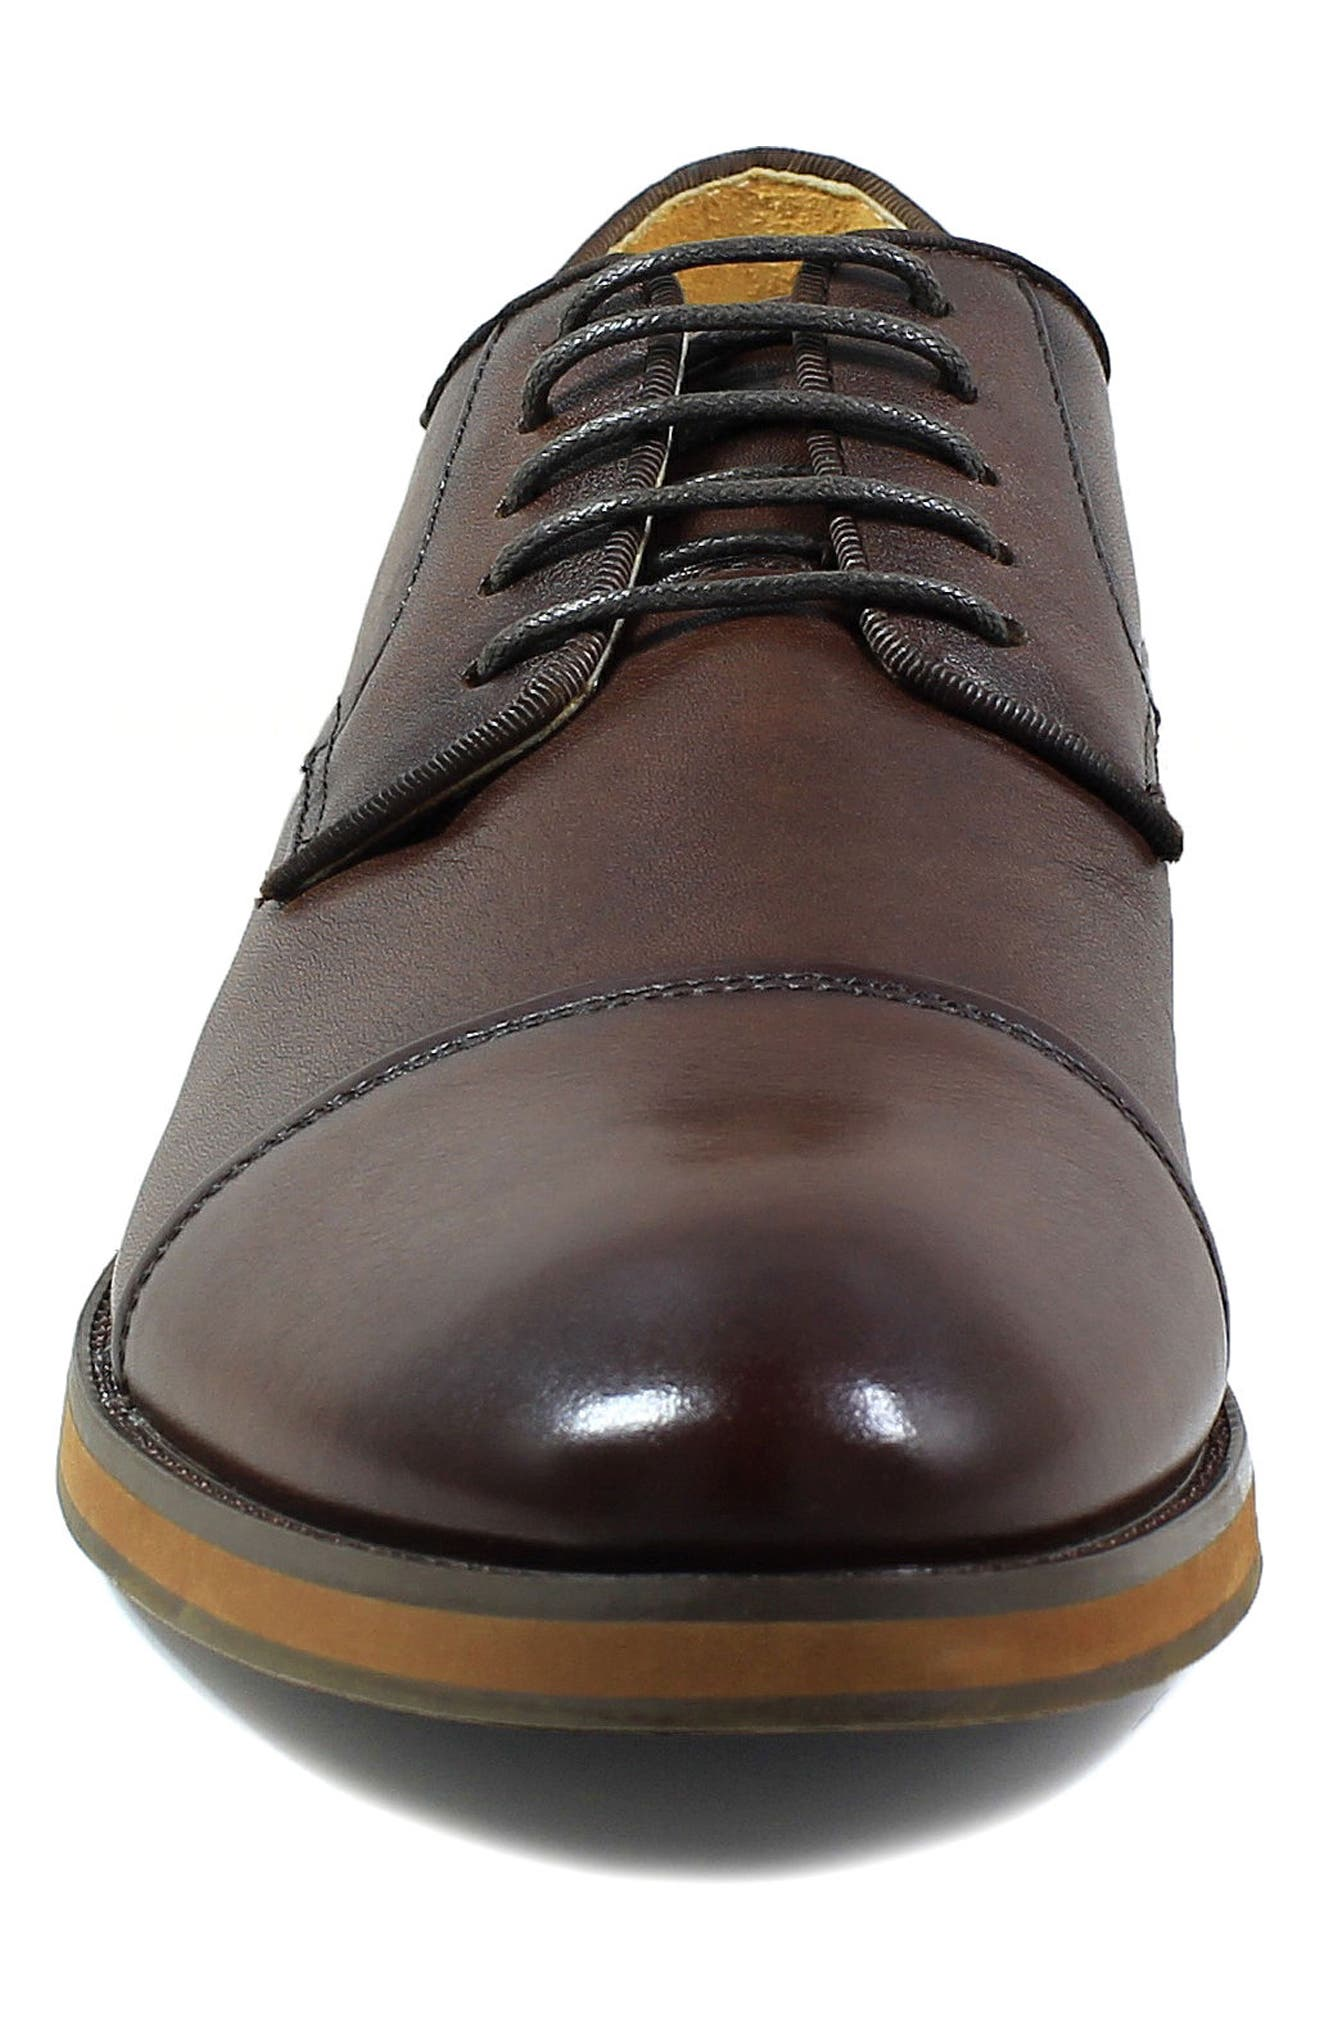 Blaze Cap Toe Derby,                             Alternate thumbnail 4, color,                             Cognac Leather